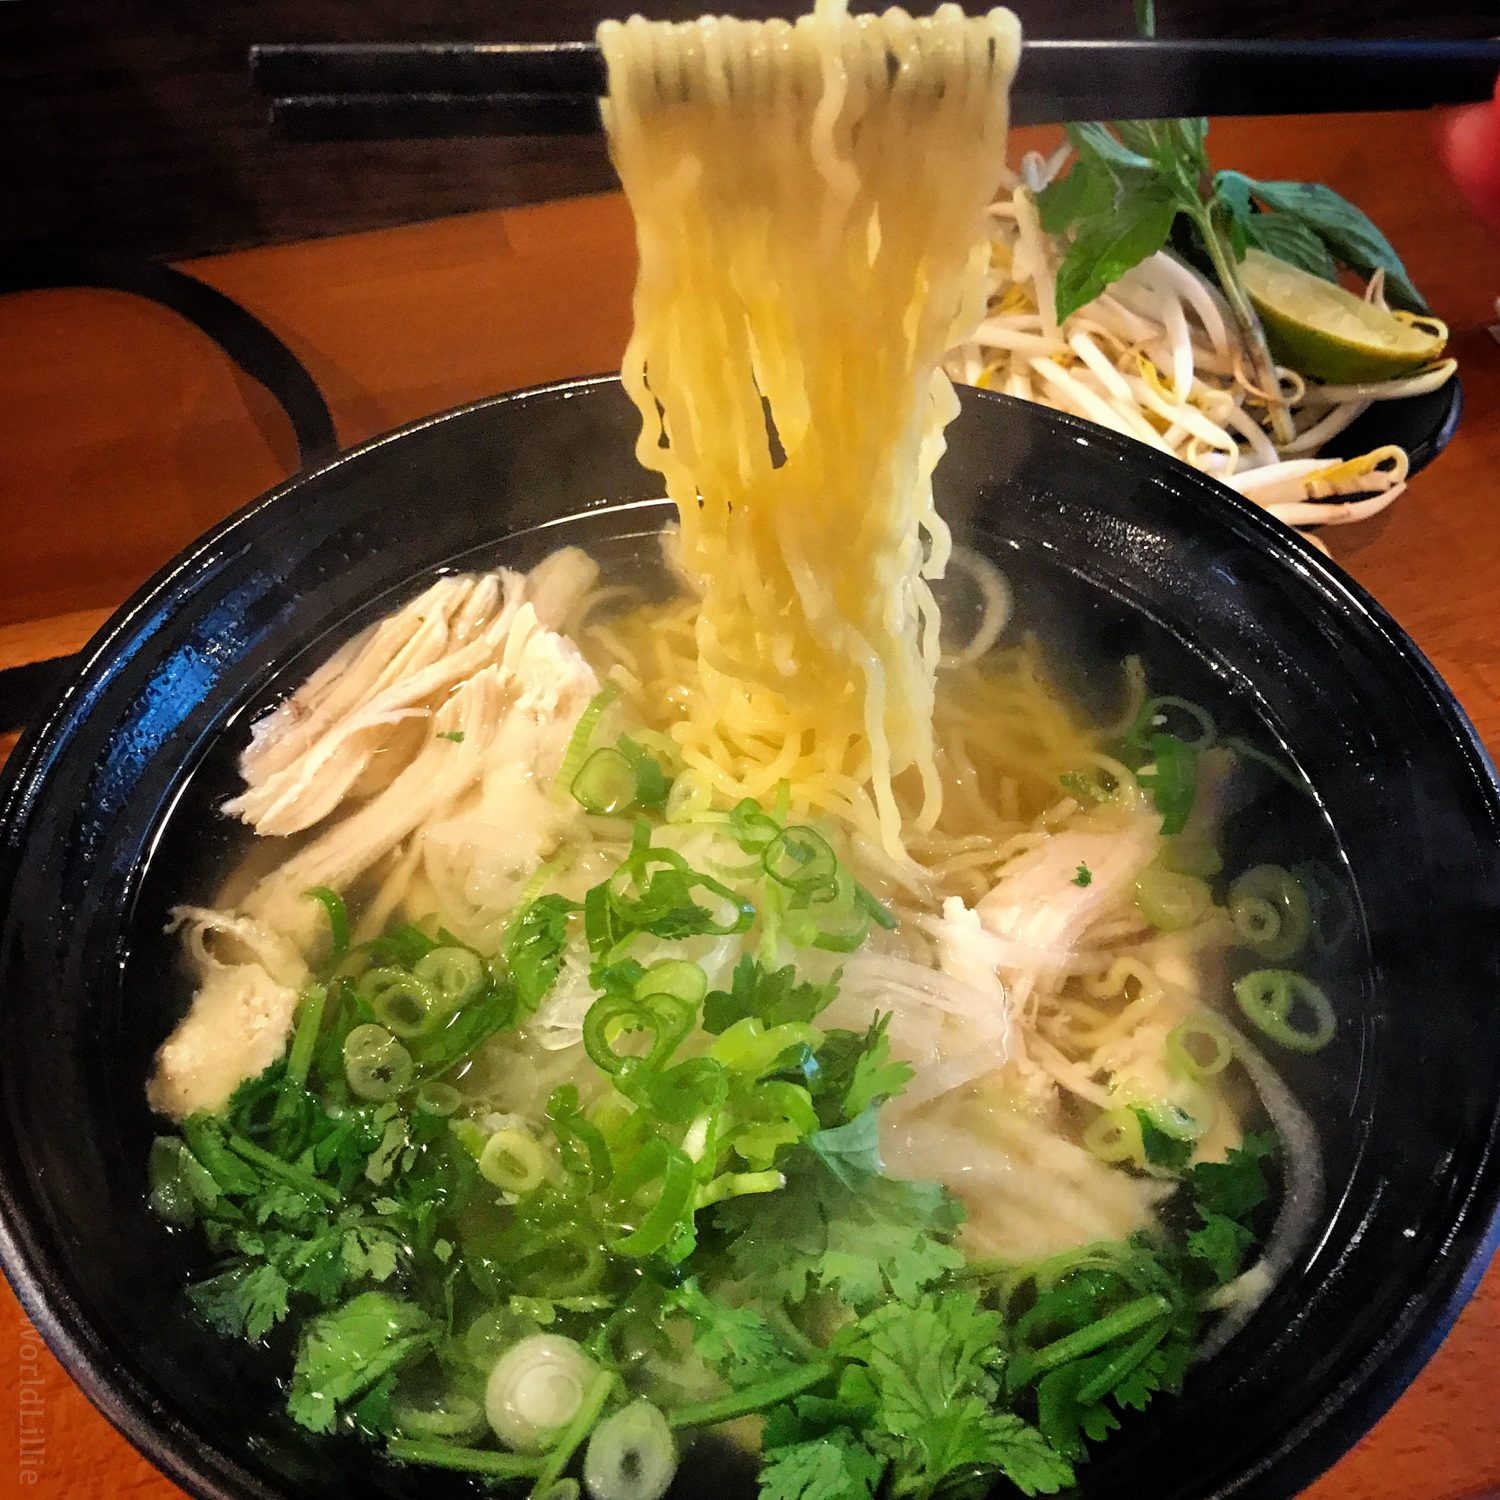 Key learning this year: Pho can be made with ramen noodles!